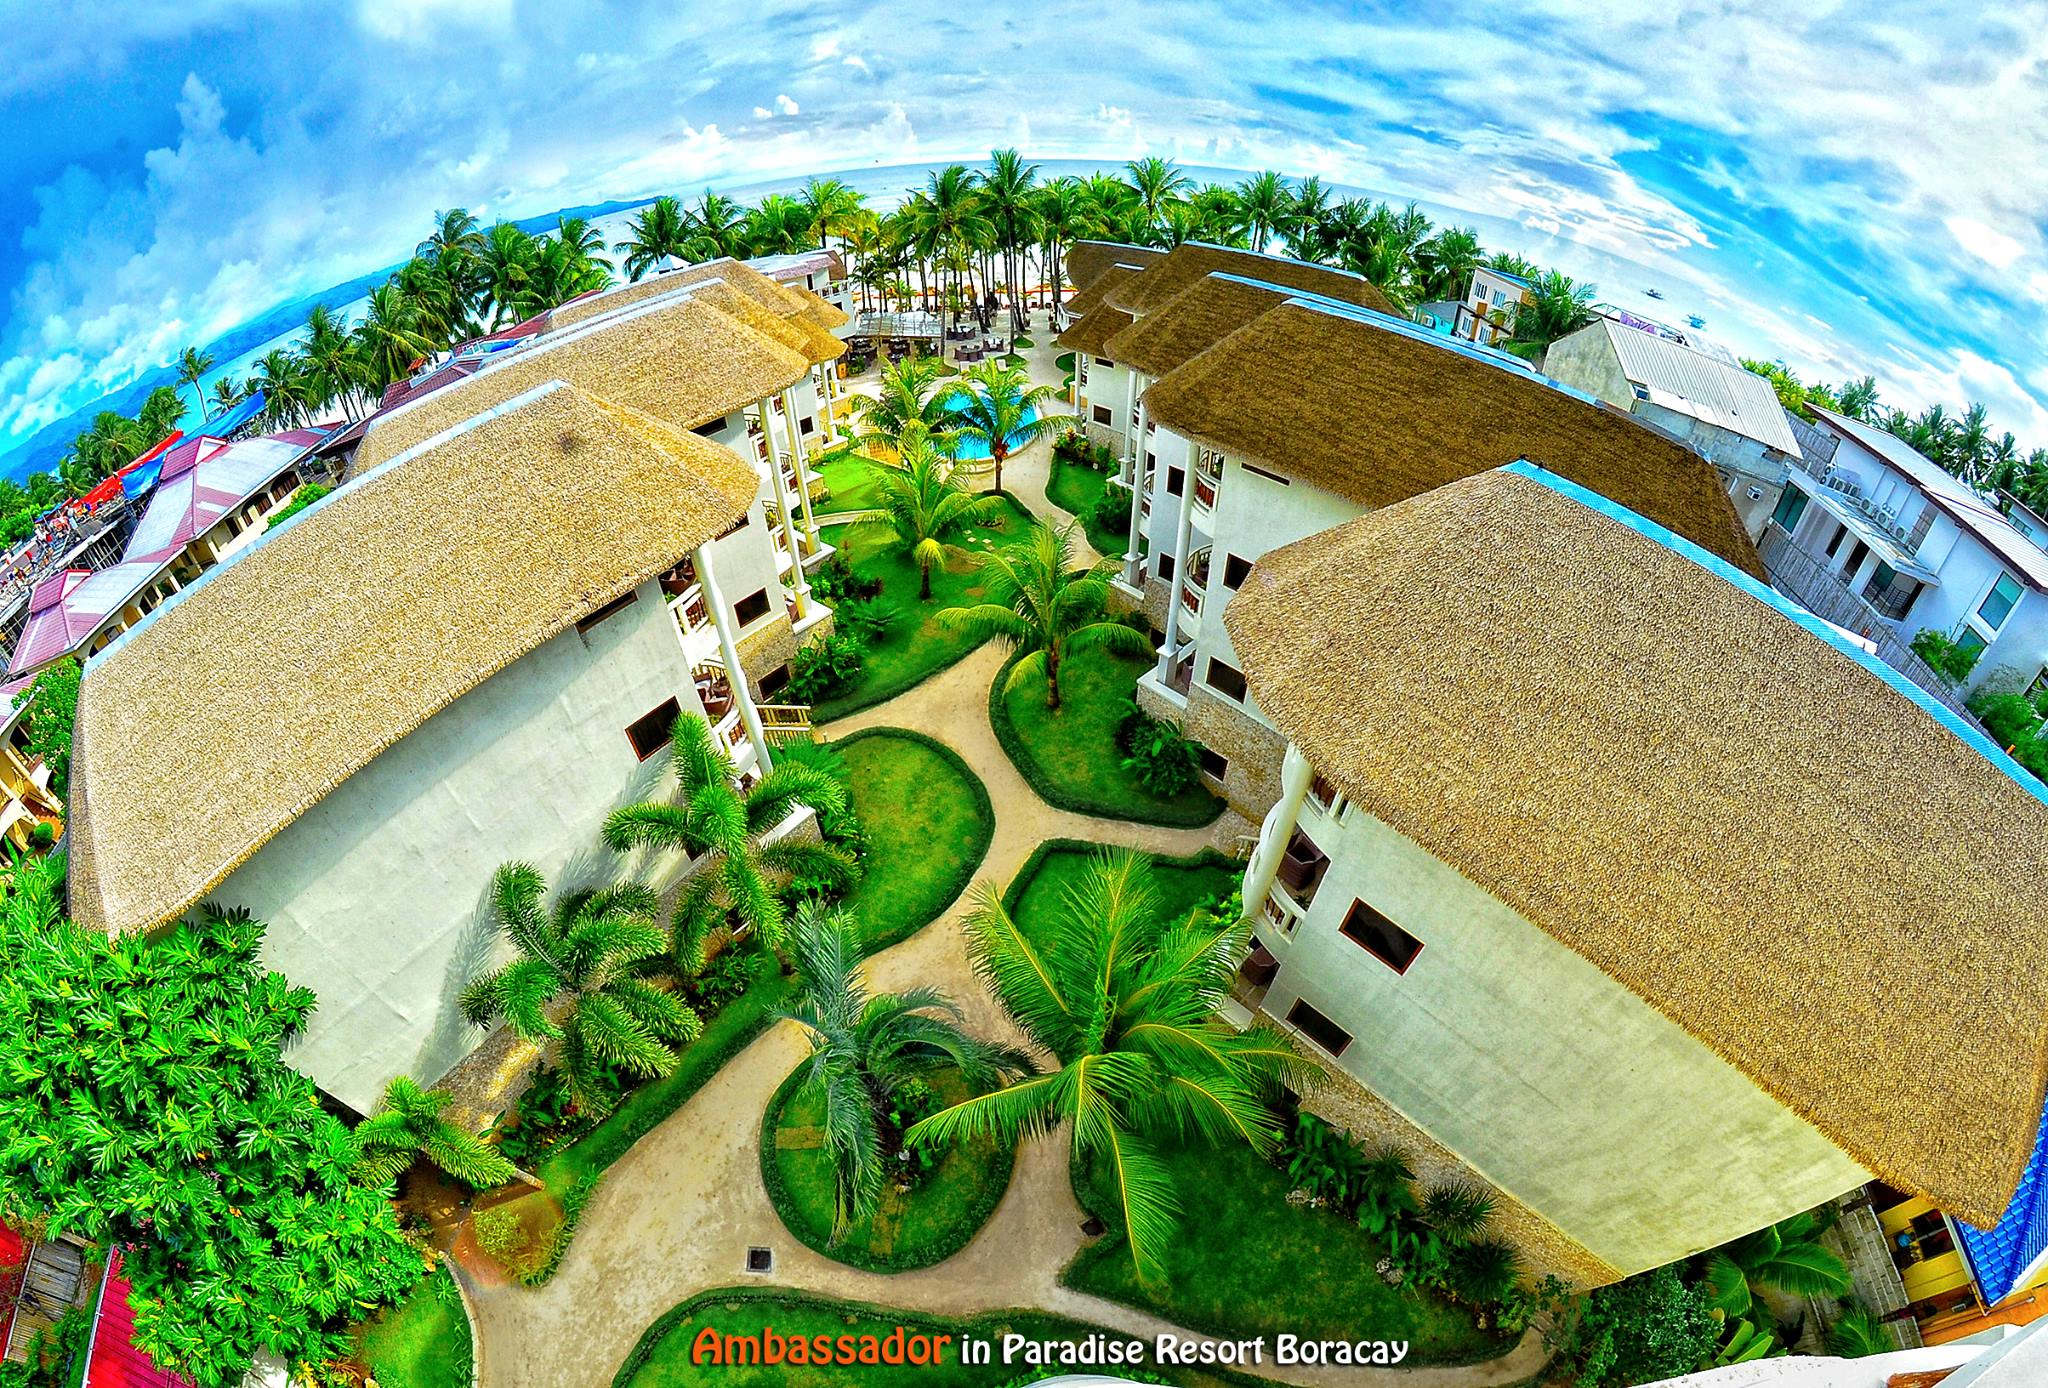 Aerial view of Ambassador in Paradise Boracay